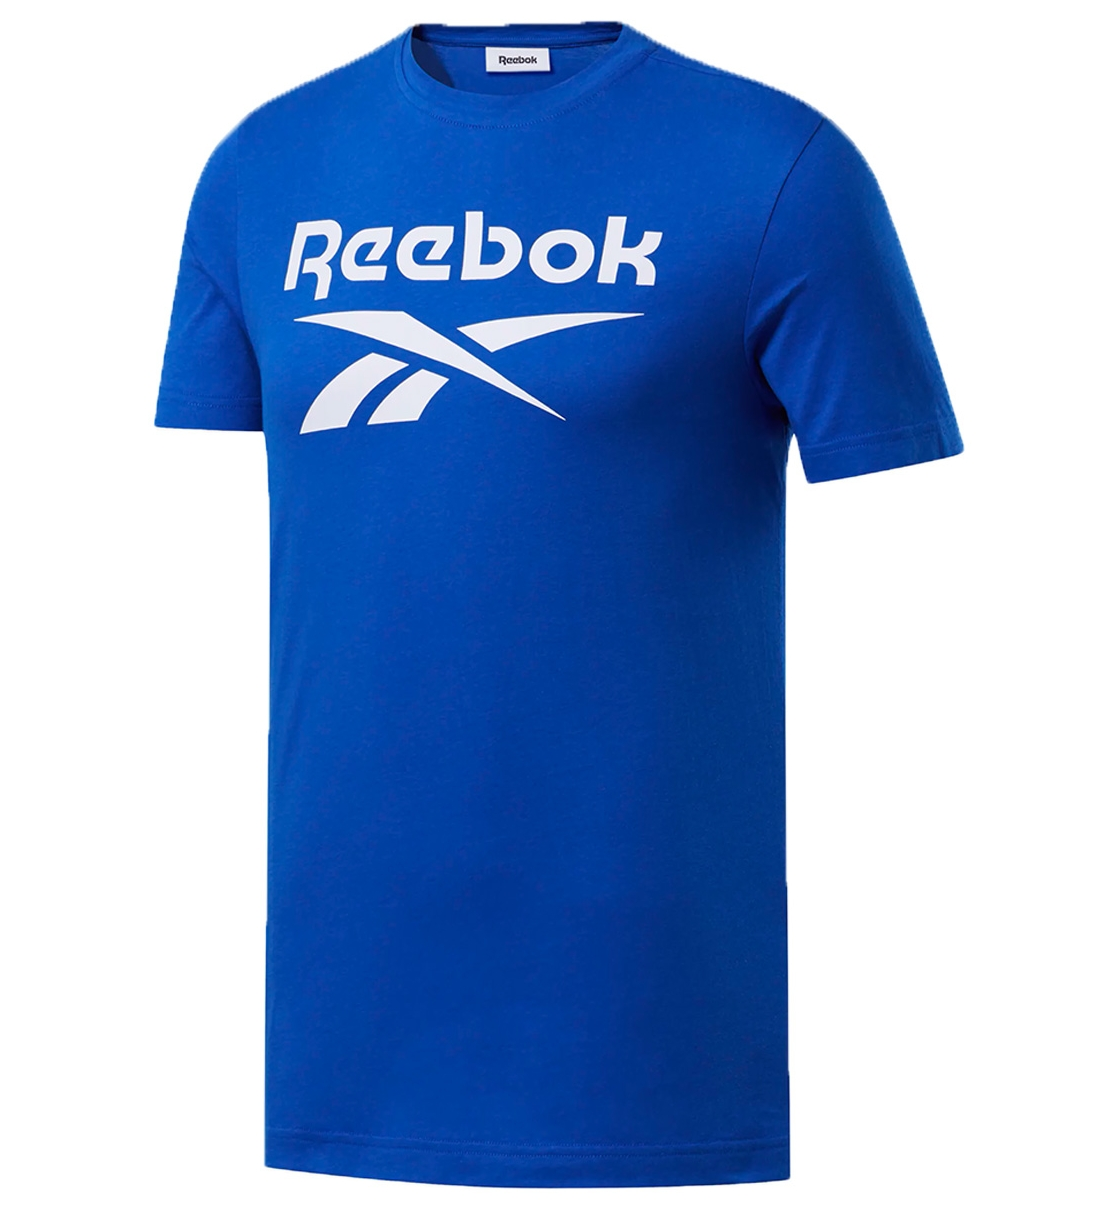 Reebok Fw20 Graphic Series Reebo